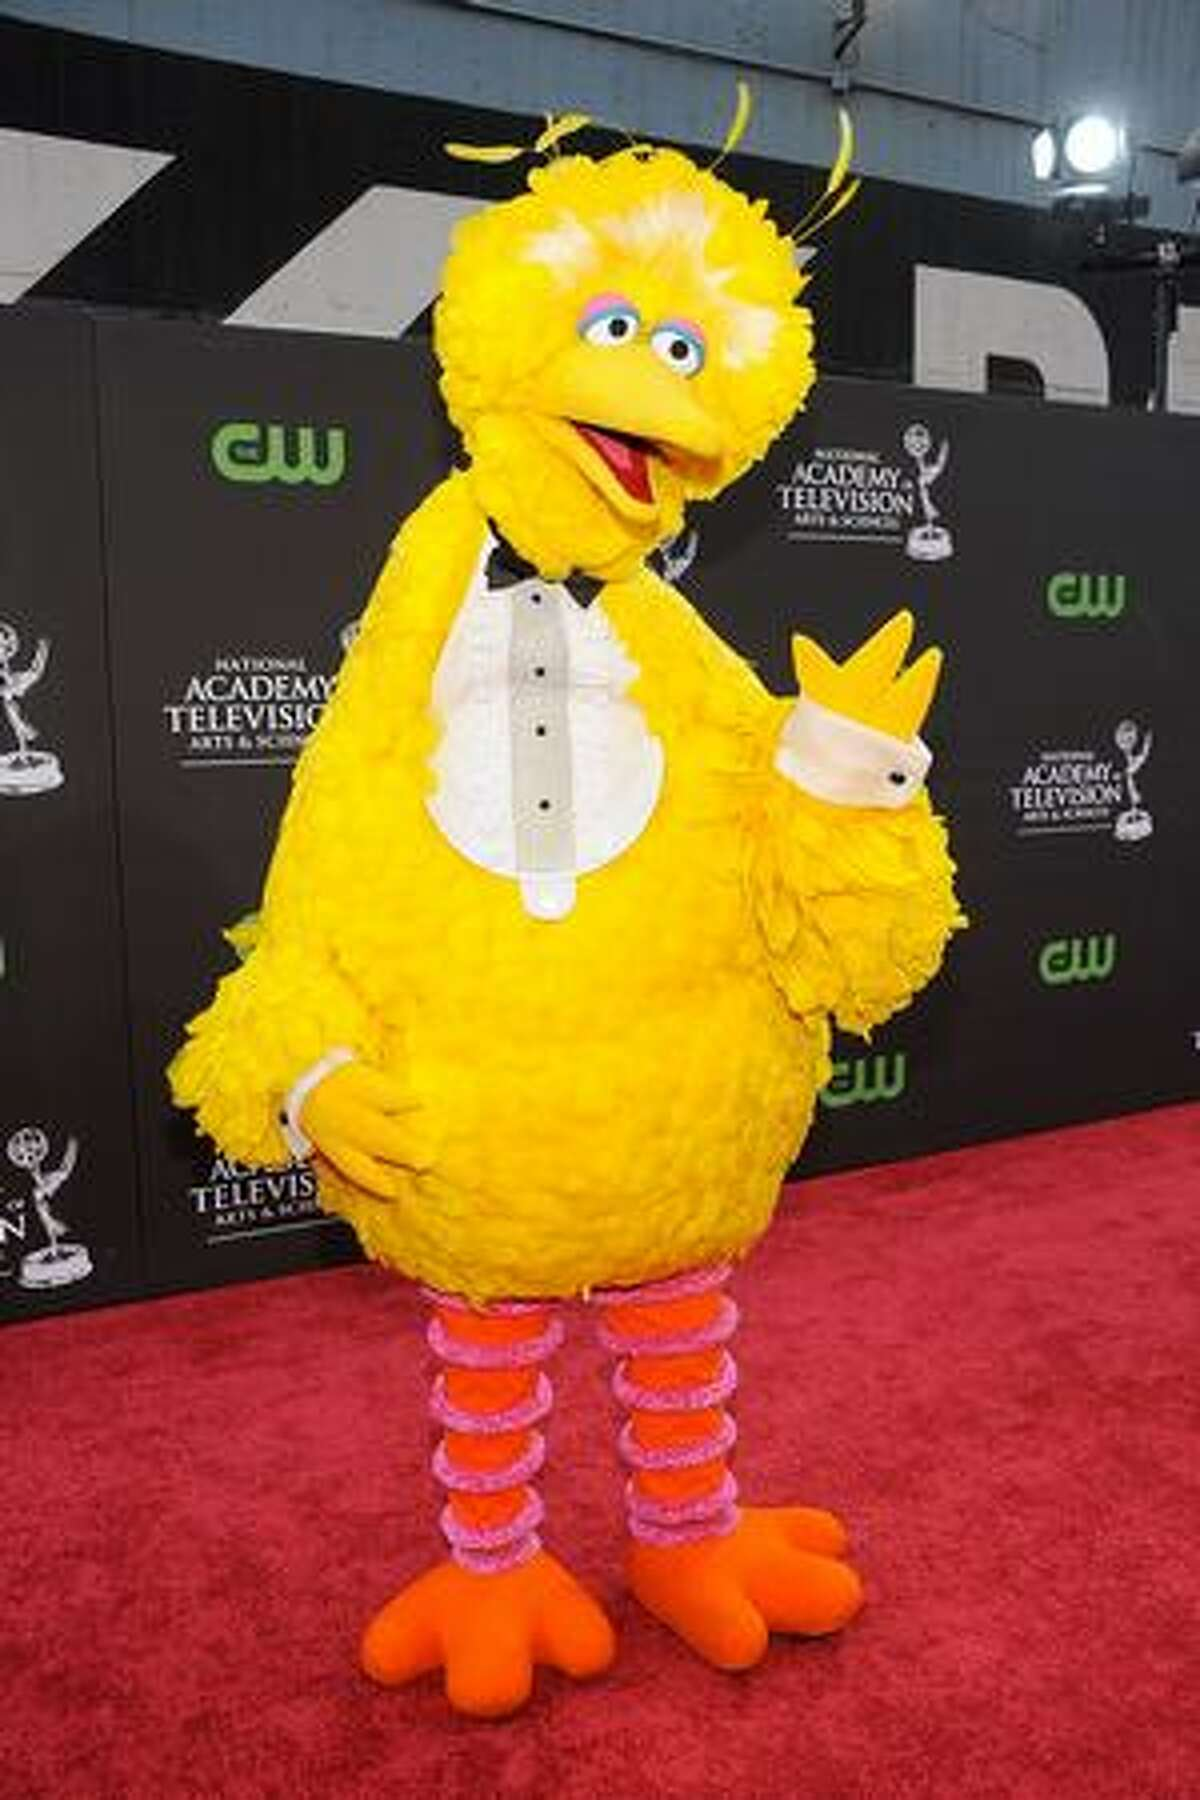 Big Bird arrives at the 36th Annual Daytime Entertainment Emmy Awards at The Orpheum Theatre on Sunday in Los Angeles, Calif.